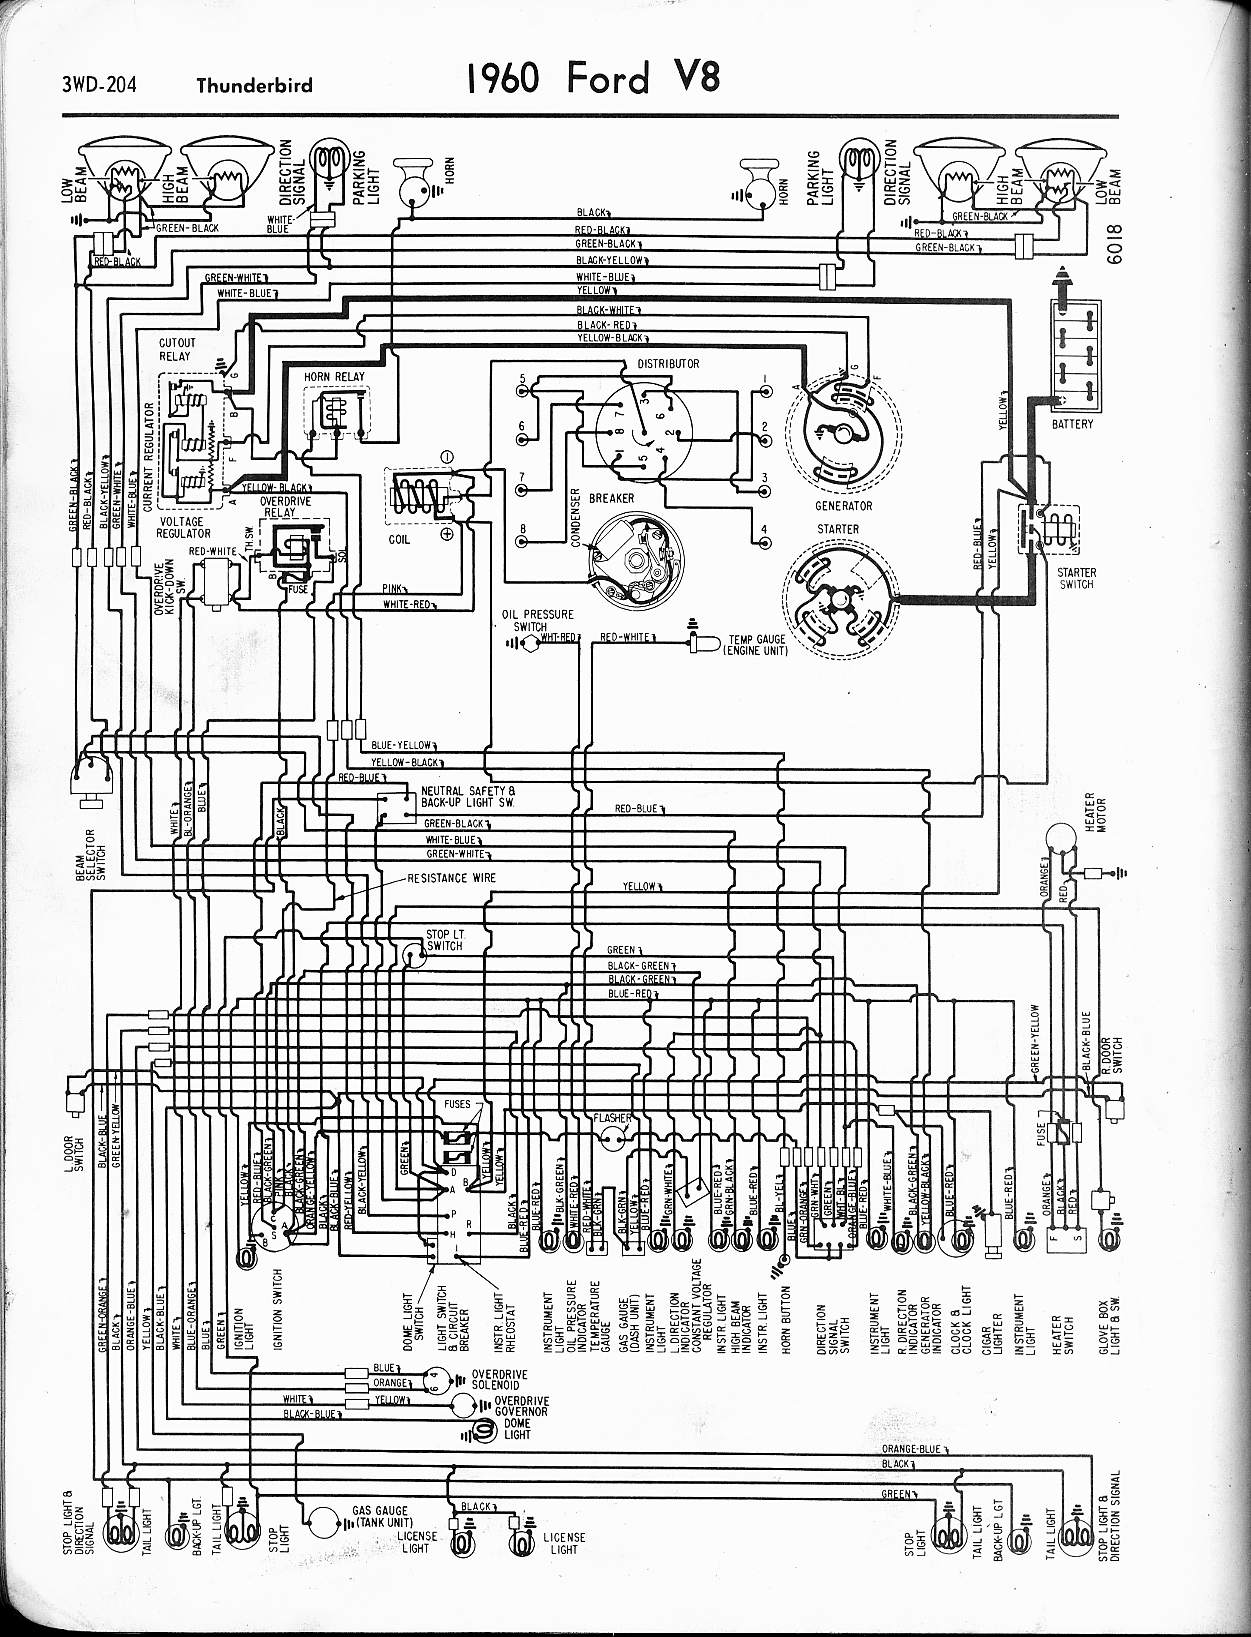 Chevy Starter Wiring 1964 Diagram Schematics Ford 3000 Instrument Cluster 57 Thunderbird Ignition Switch Content Resource Of Solenoid 65